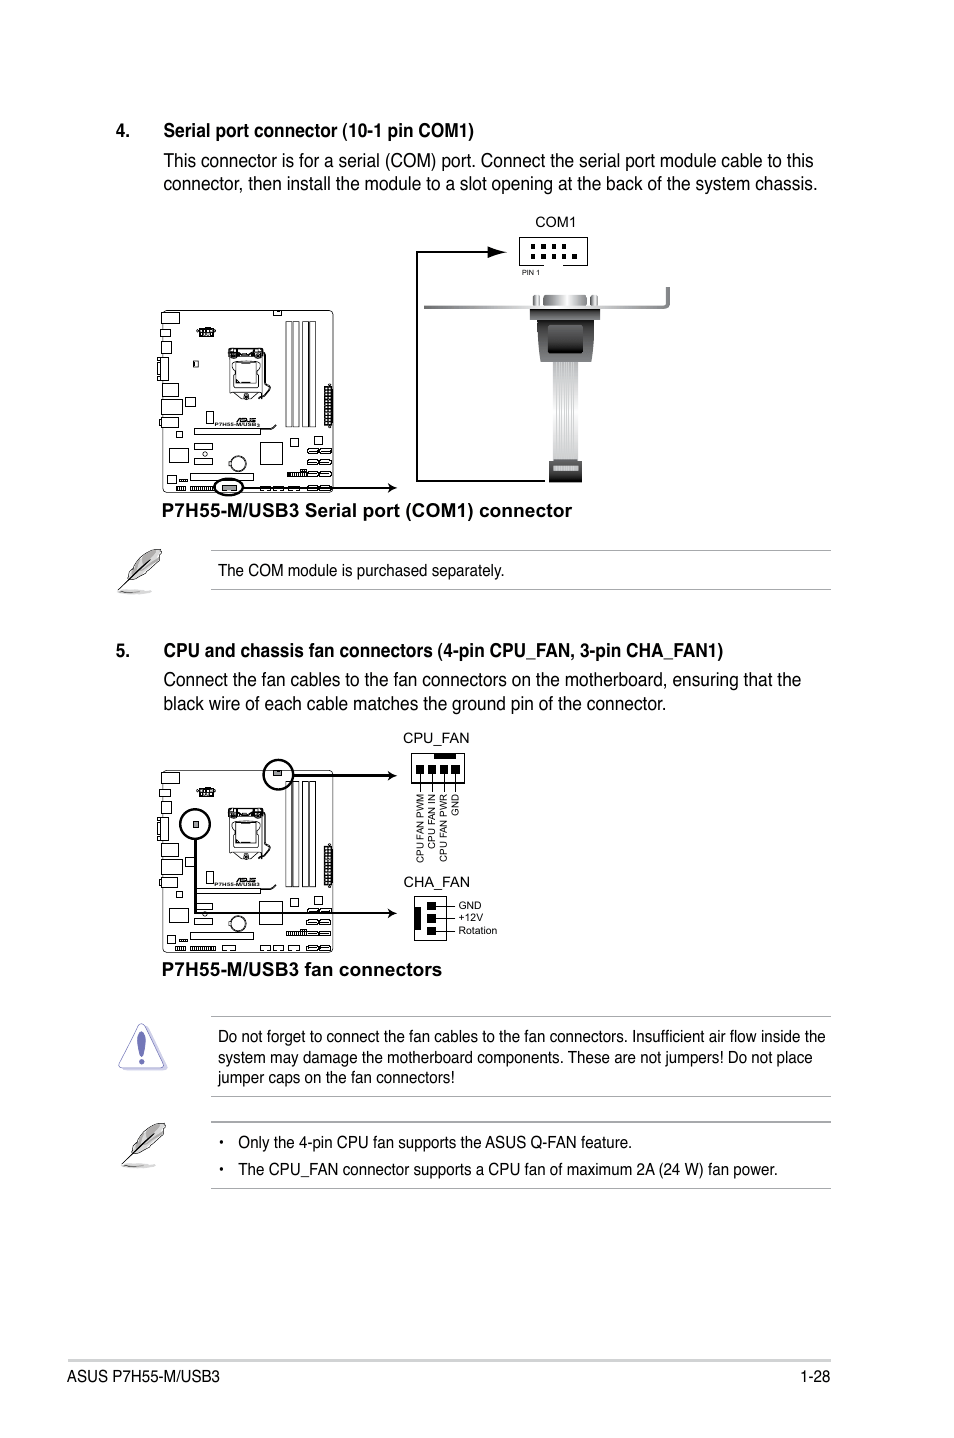 medium resolution of p7h55 m usb3 fan connectors asus p7h55 m usb3 user manual page 41 78